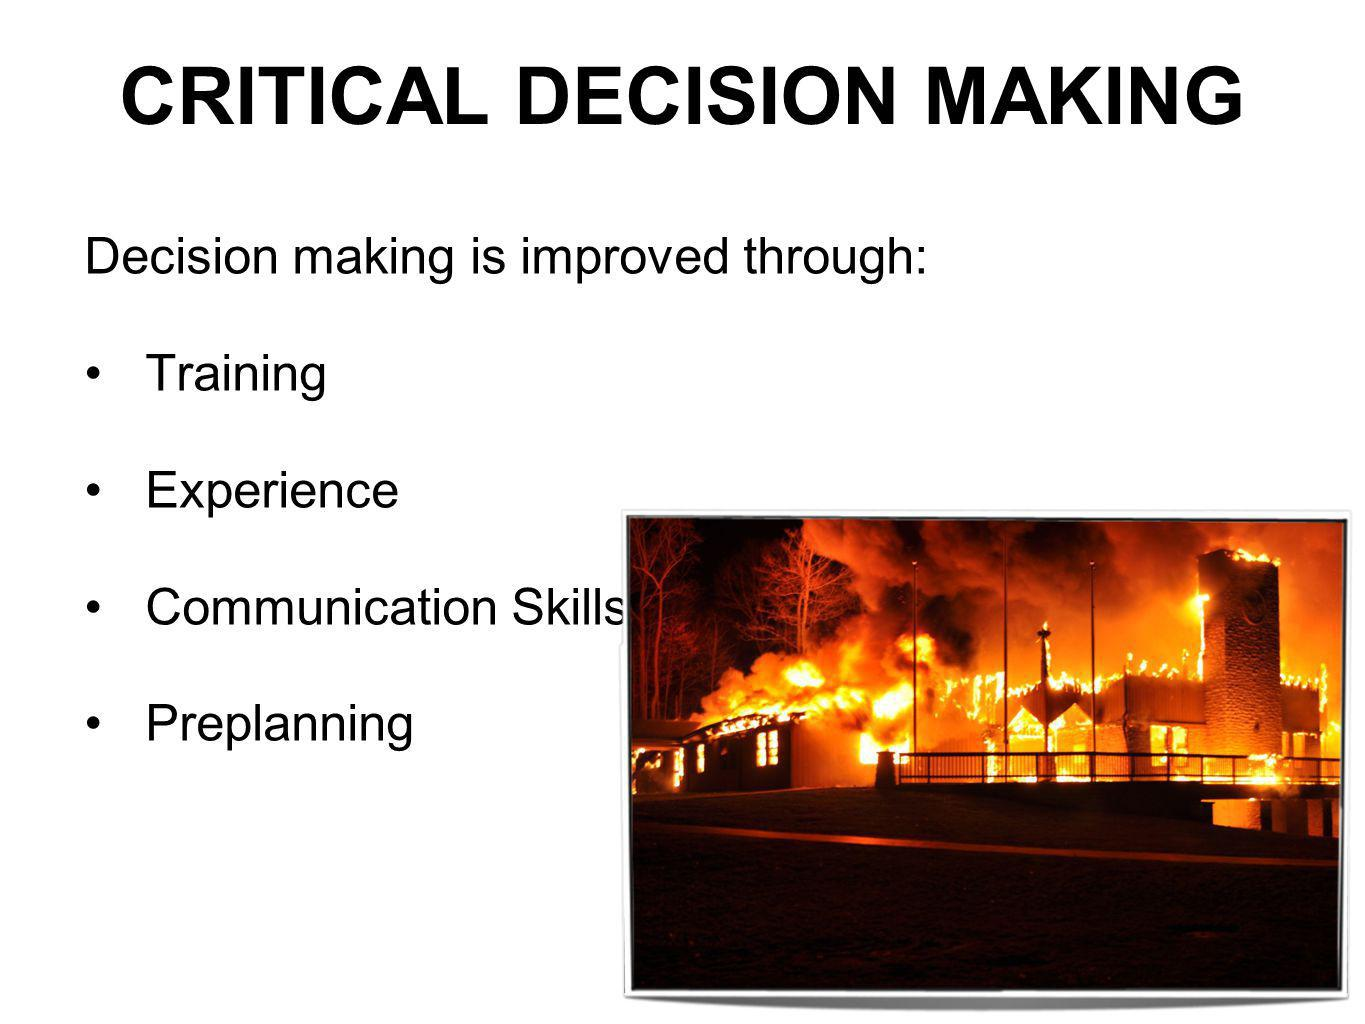 CRITICAL DECISION MAKING Decision making is improved through: Training Experience Communication Skills Preplanning